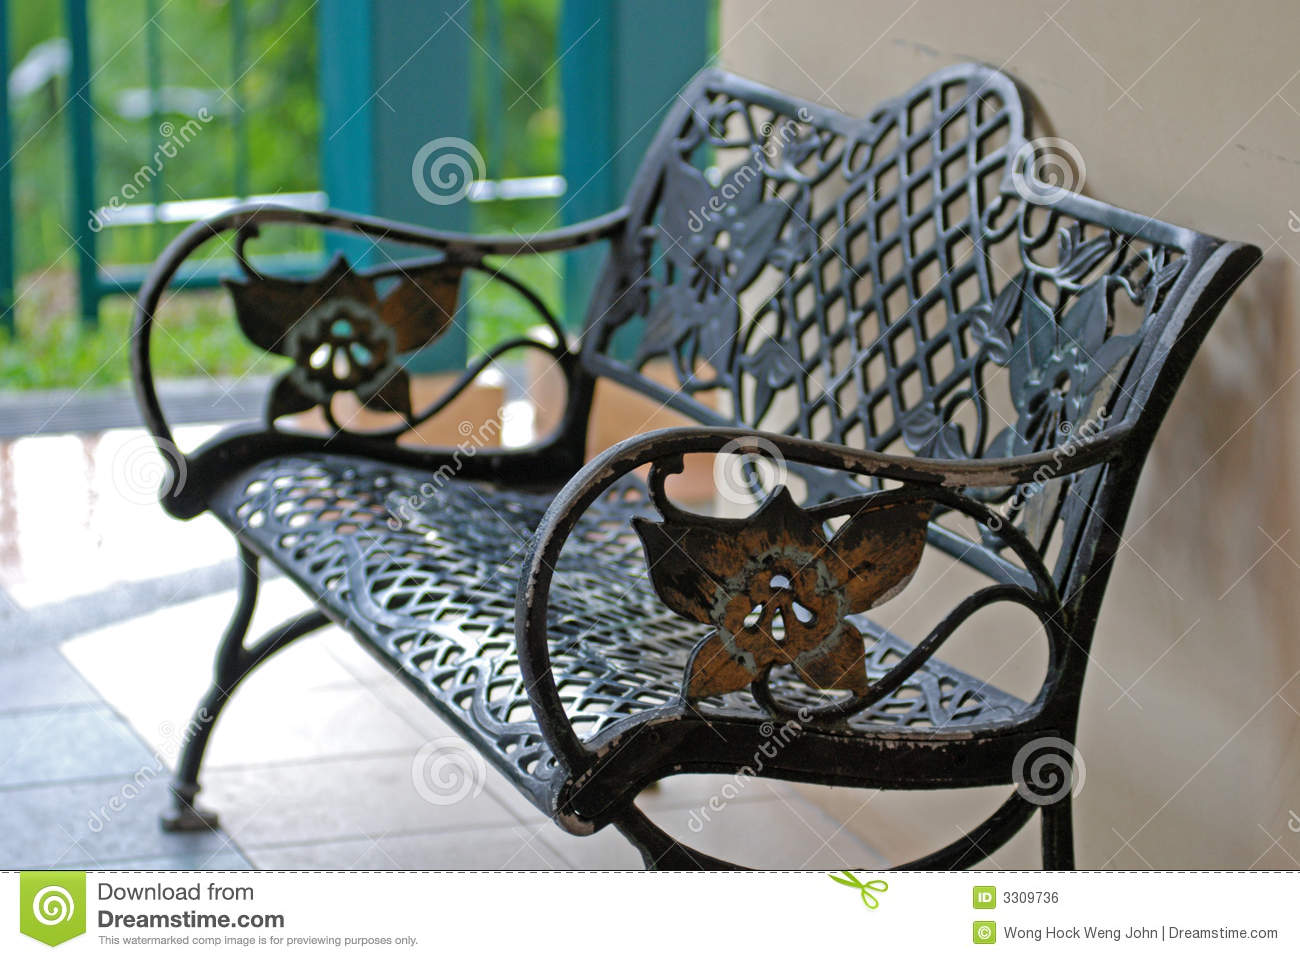 banco de jardim vetor:Iron Bench At The Garden Royalty Free Stock Image – Image: 3309736